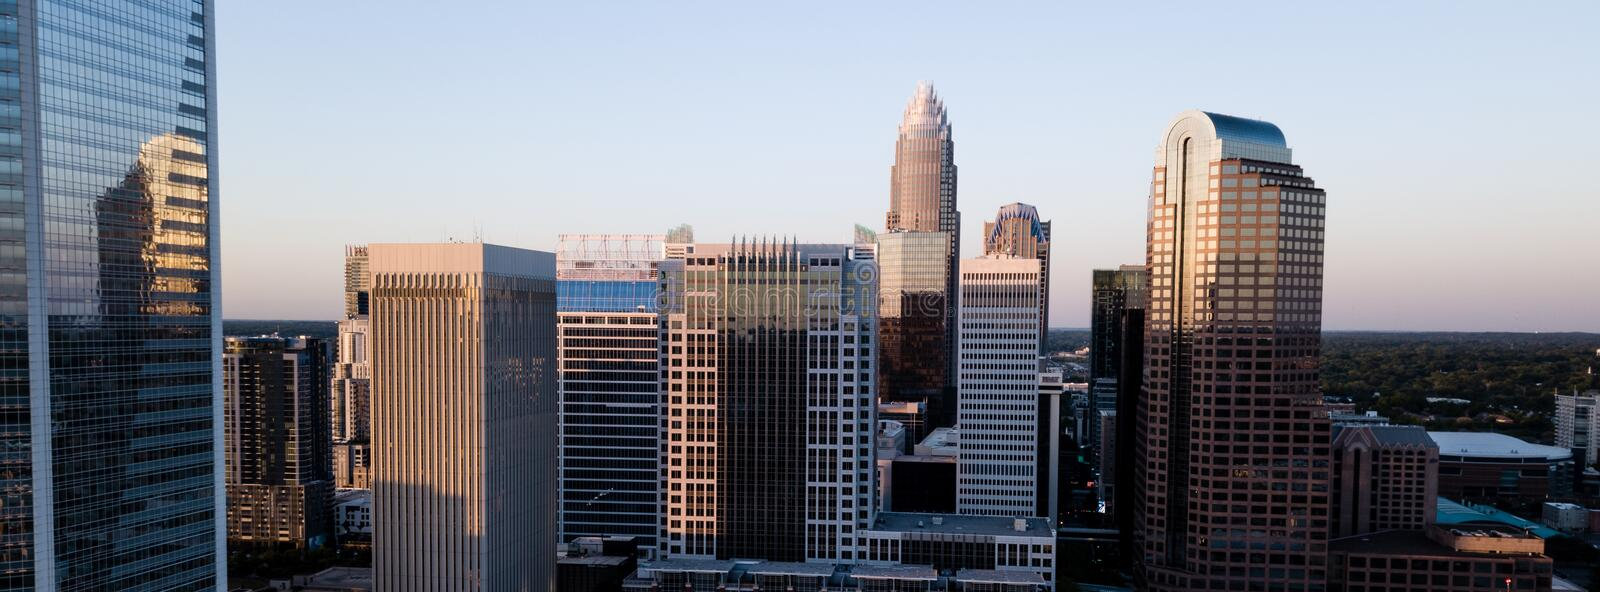 Aerial View of Select Buildings Downtown City Skyline of Charlotte royalty free stock images